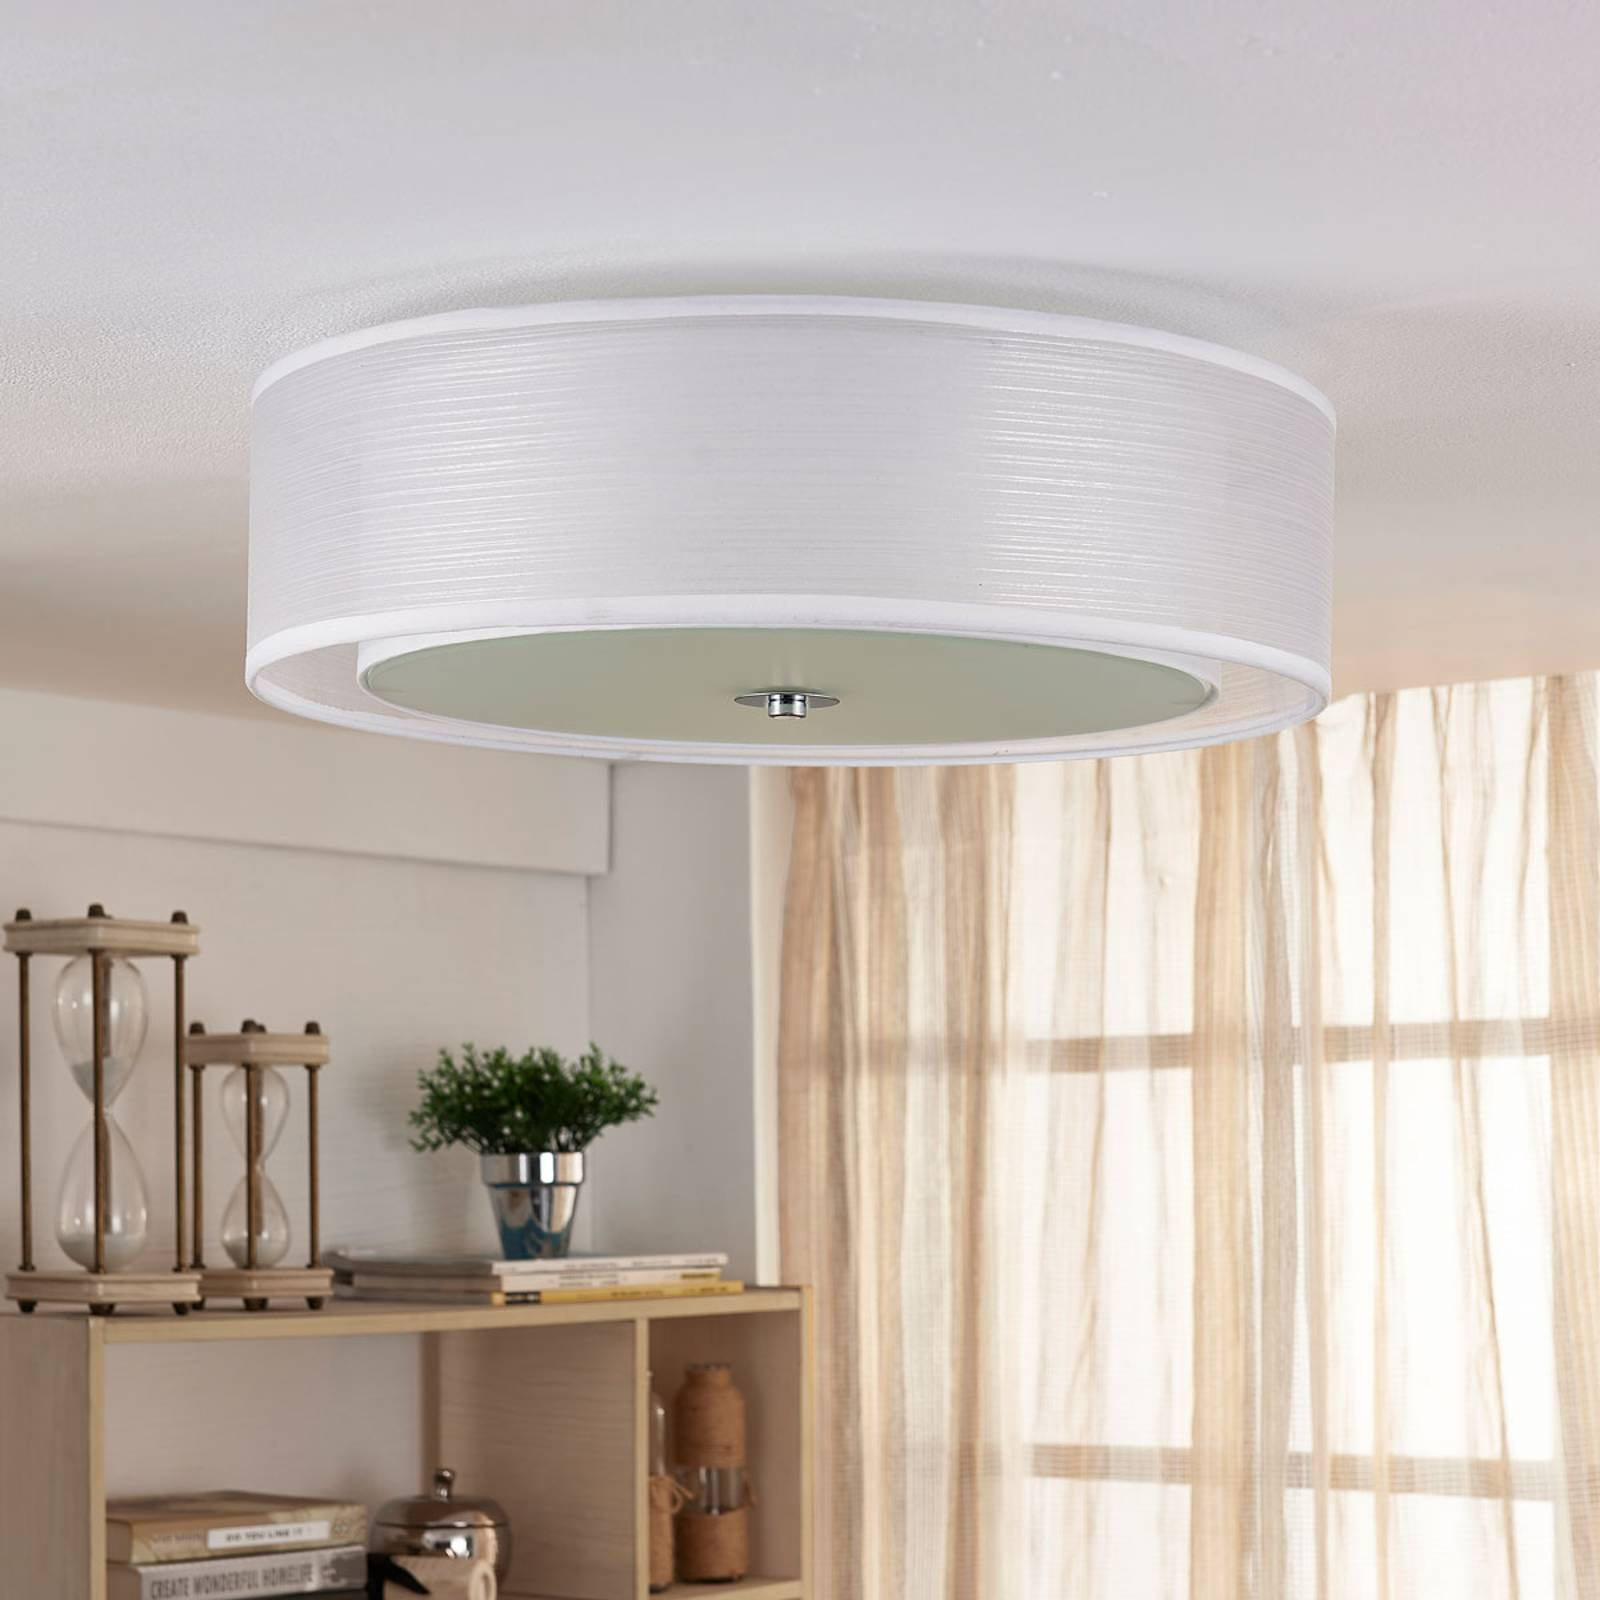 Tobia - Easydim LED ceiling light, white fabric from Lindby